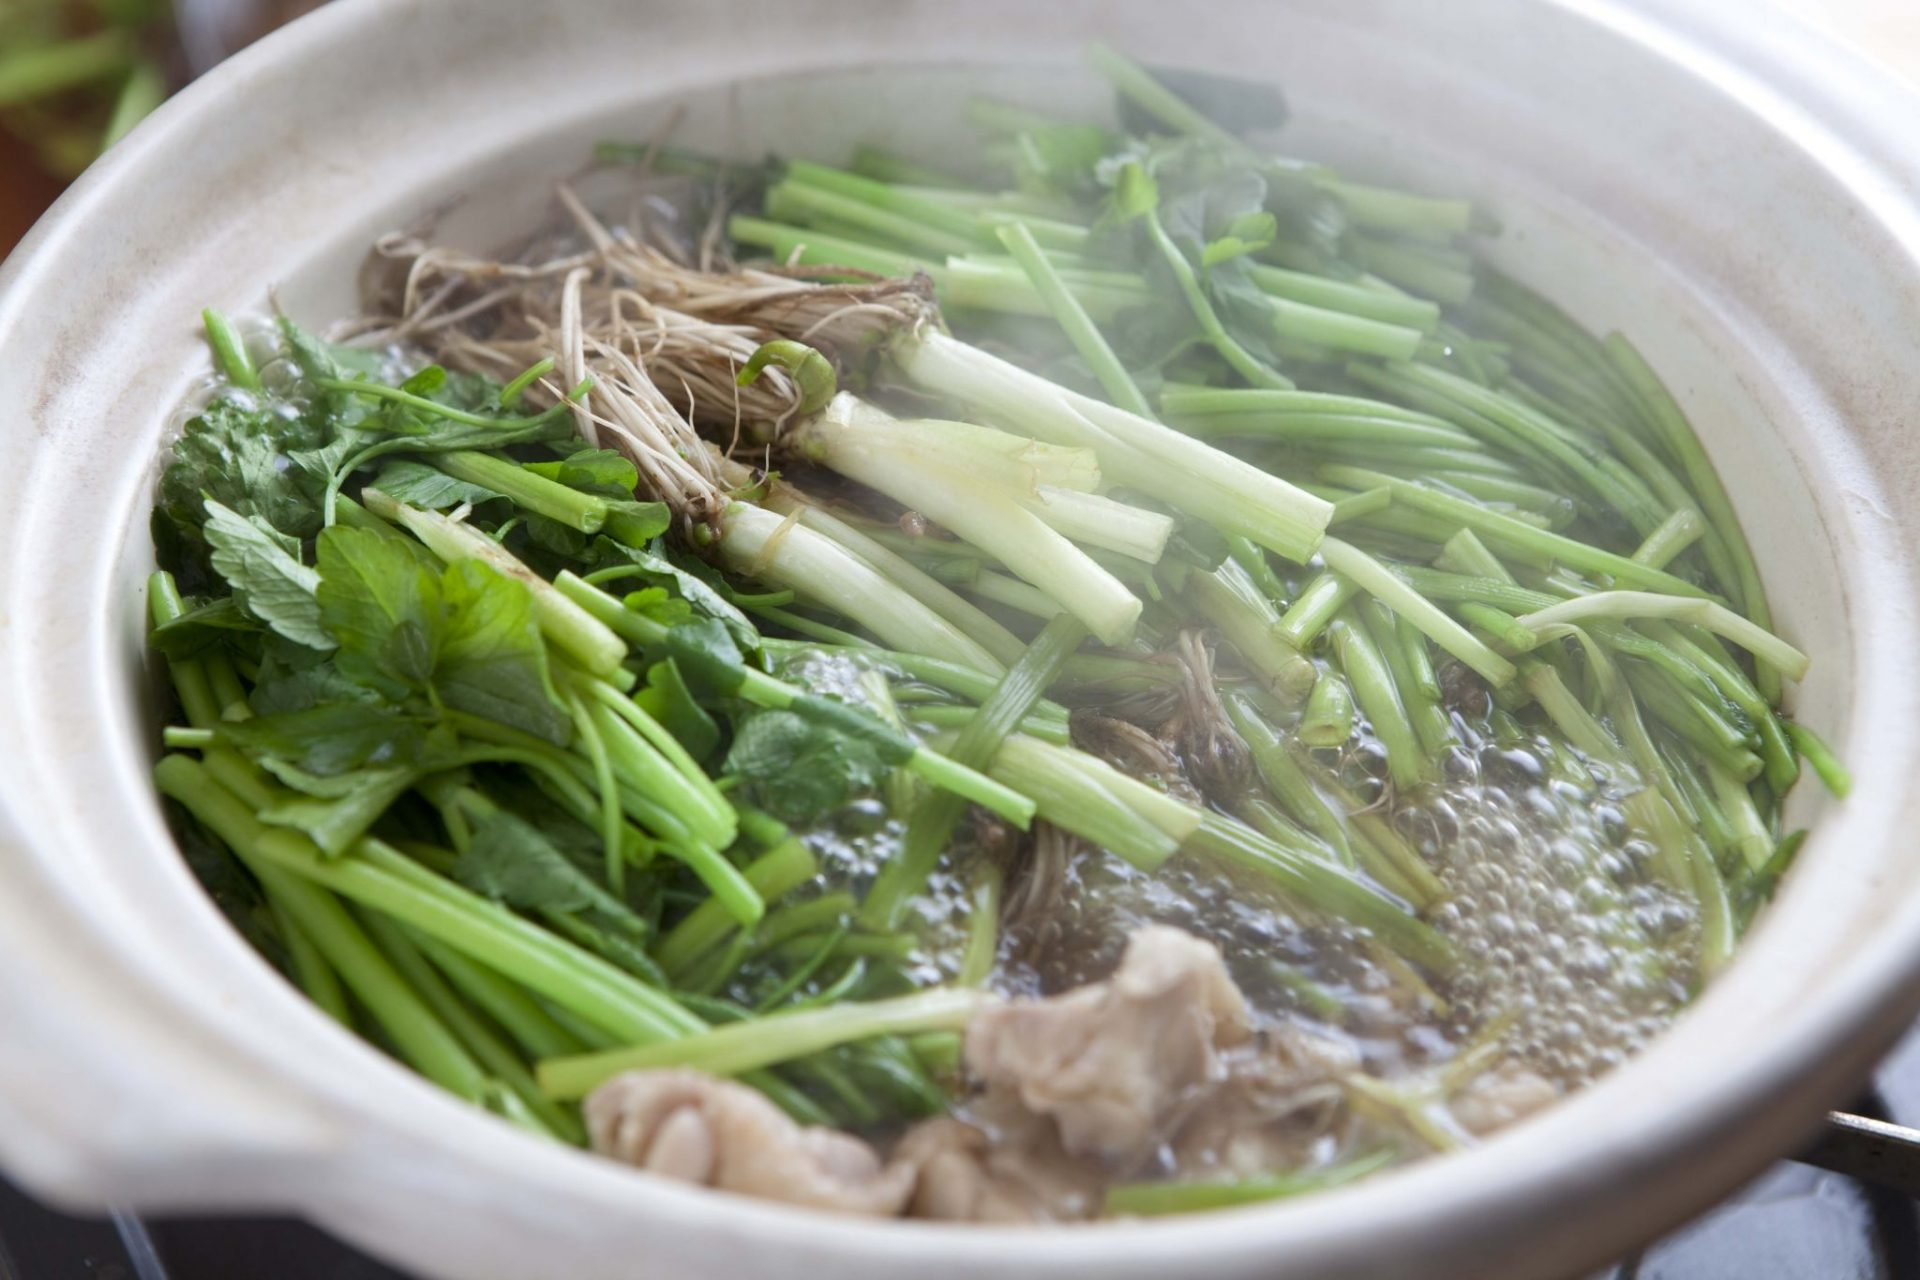 Seri nabe - a Japanese style hotpot stew cooked with parsley